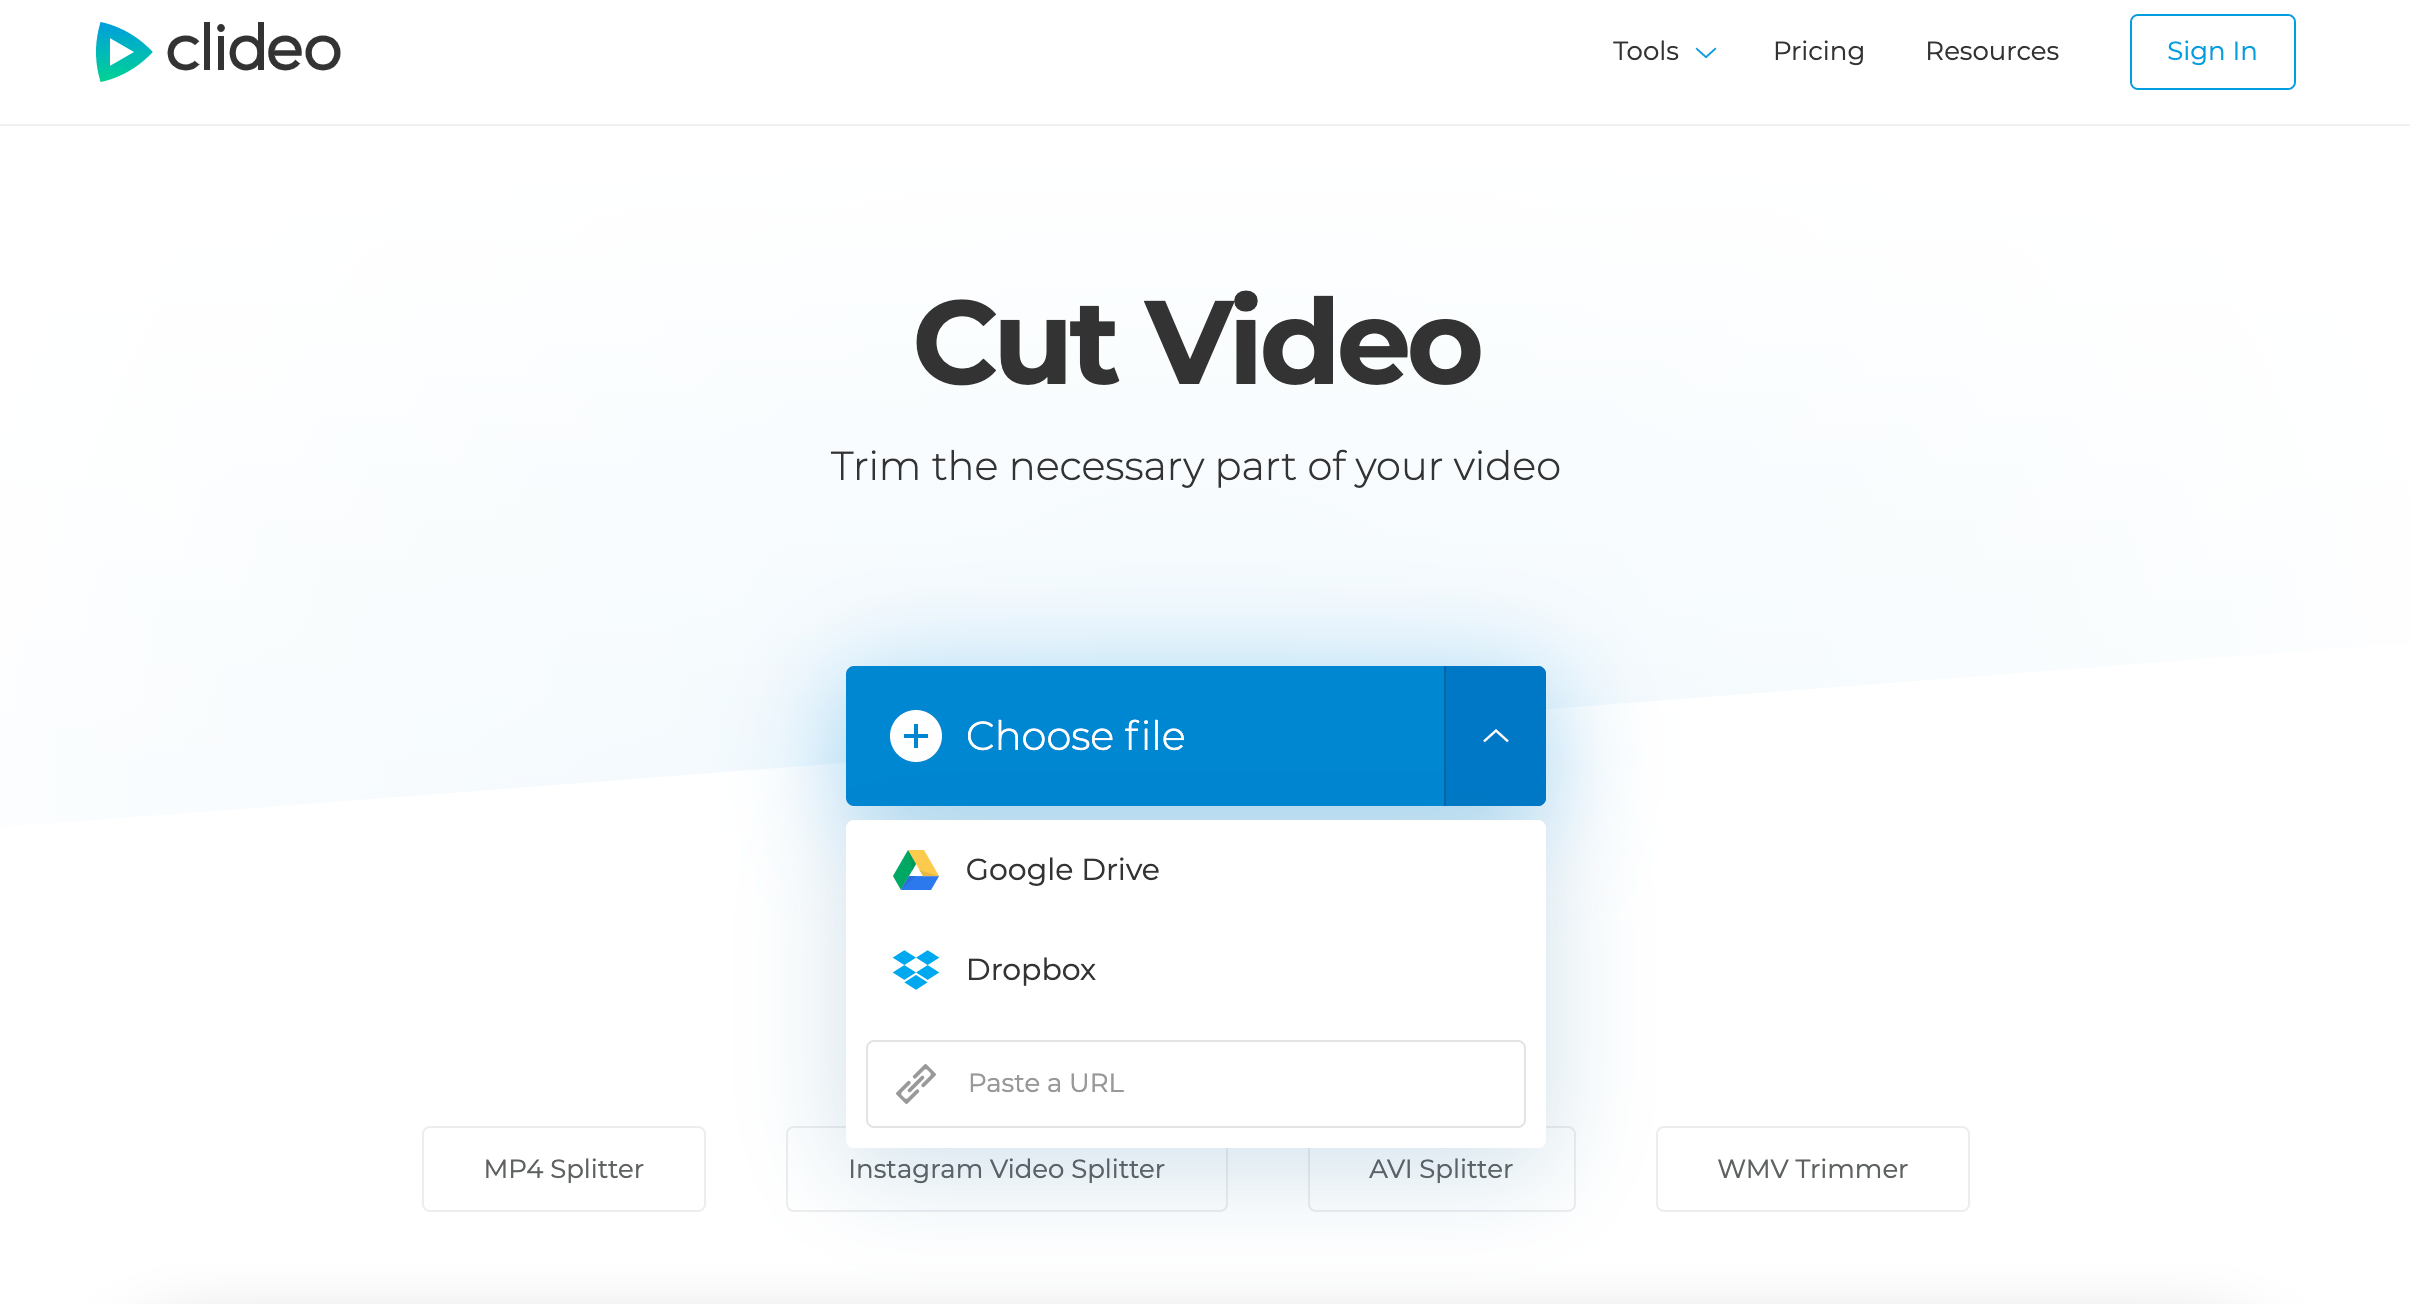 Add a video or URL to the program